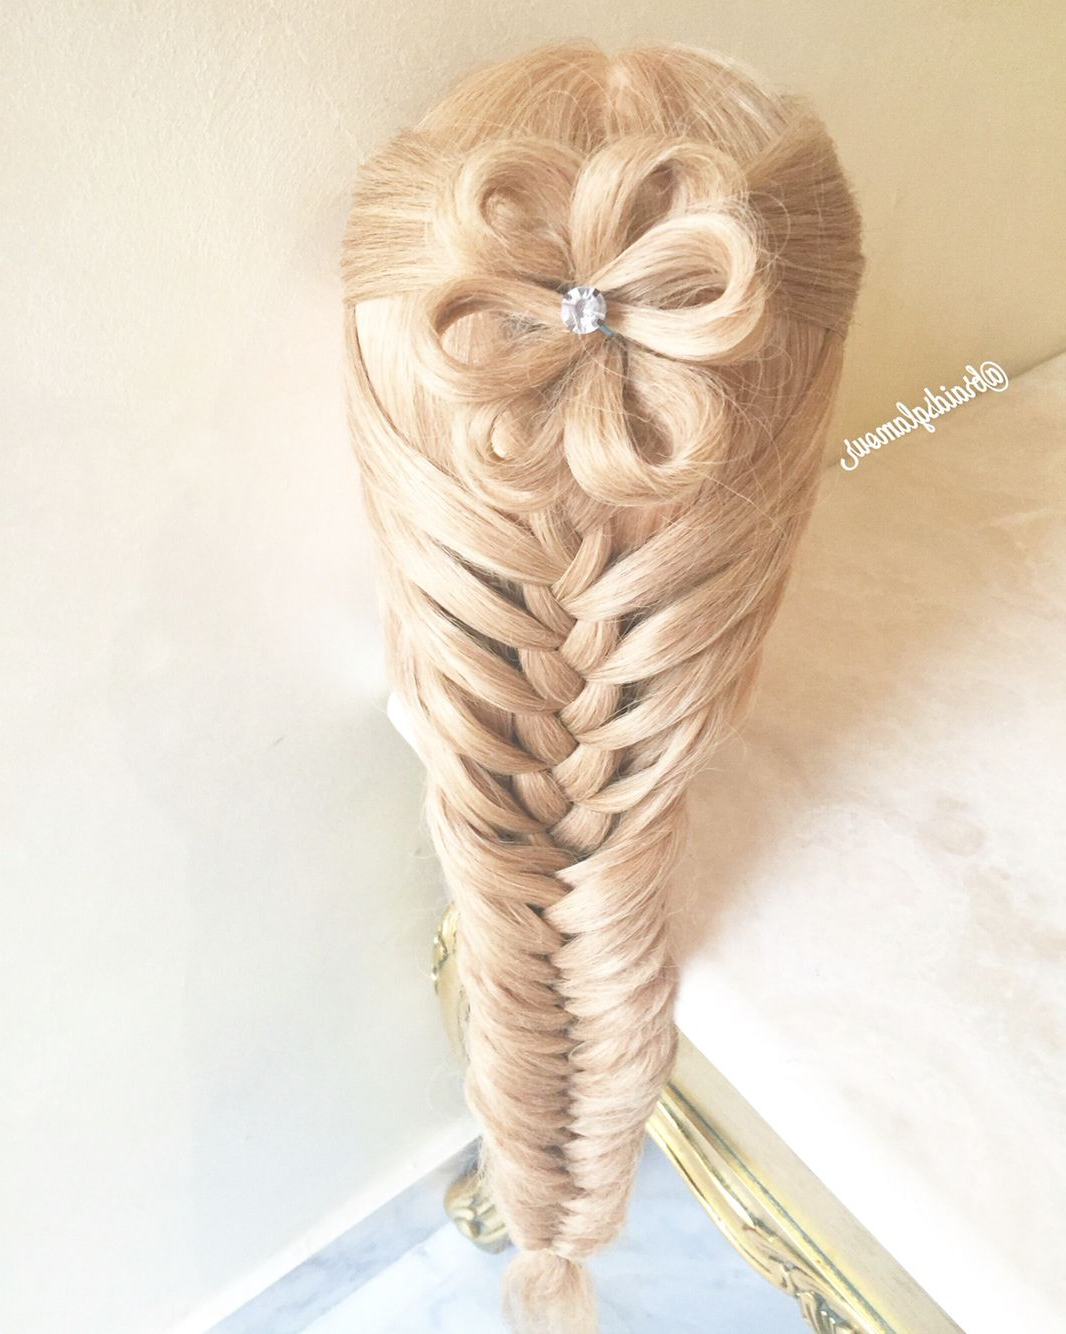 Fishtail Regarding Fashionable Mermaid Braid Hairstyles With A Fishtail (View 19 of 20)